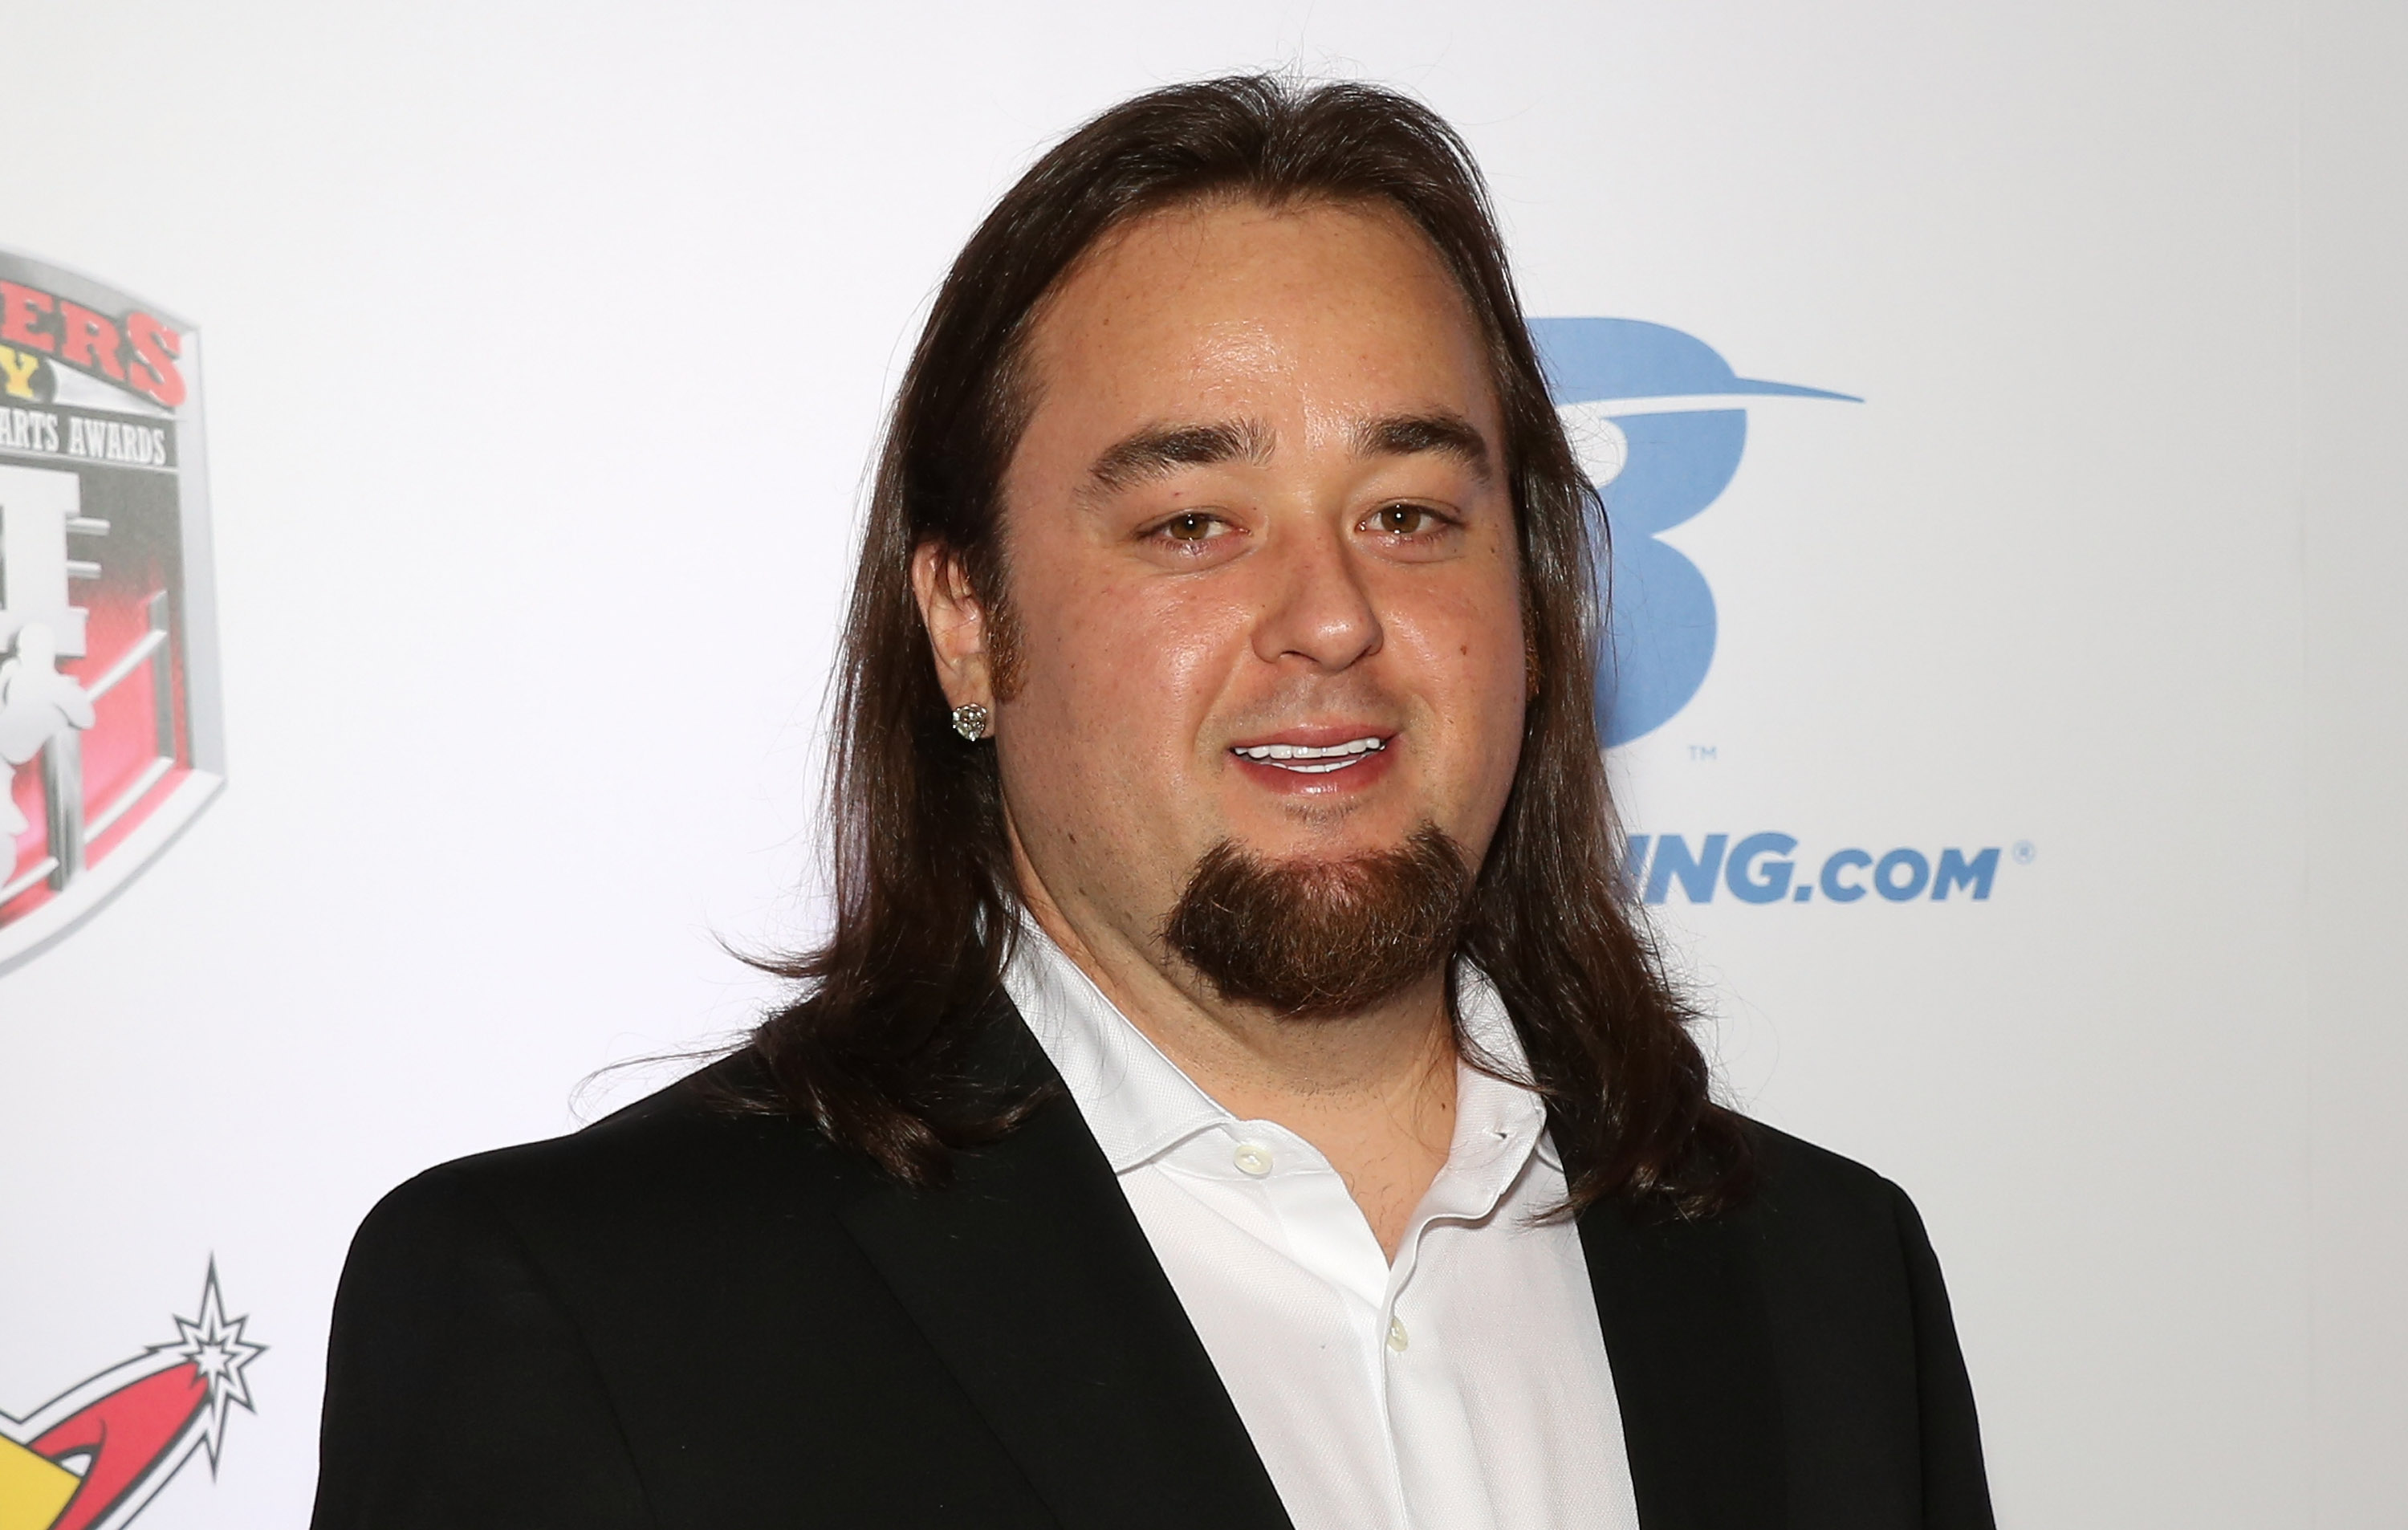 Austin  Chumlee  Russell from History's  Pawn Stars  television series arrives at the sixth annual Fighters Only World Mixed Martial Arts Awards in Las Vegas on Feb. 7, 2014 in Las Vegas, Nevada